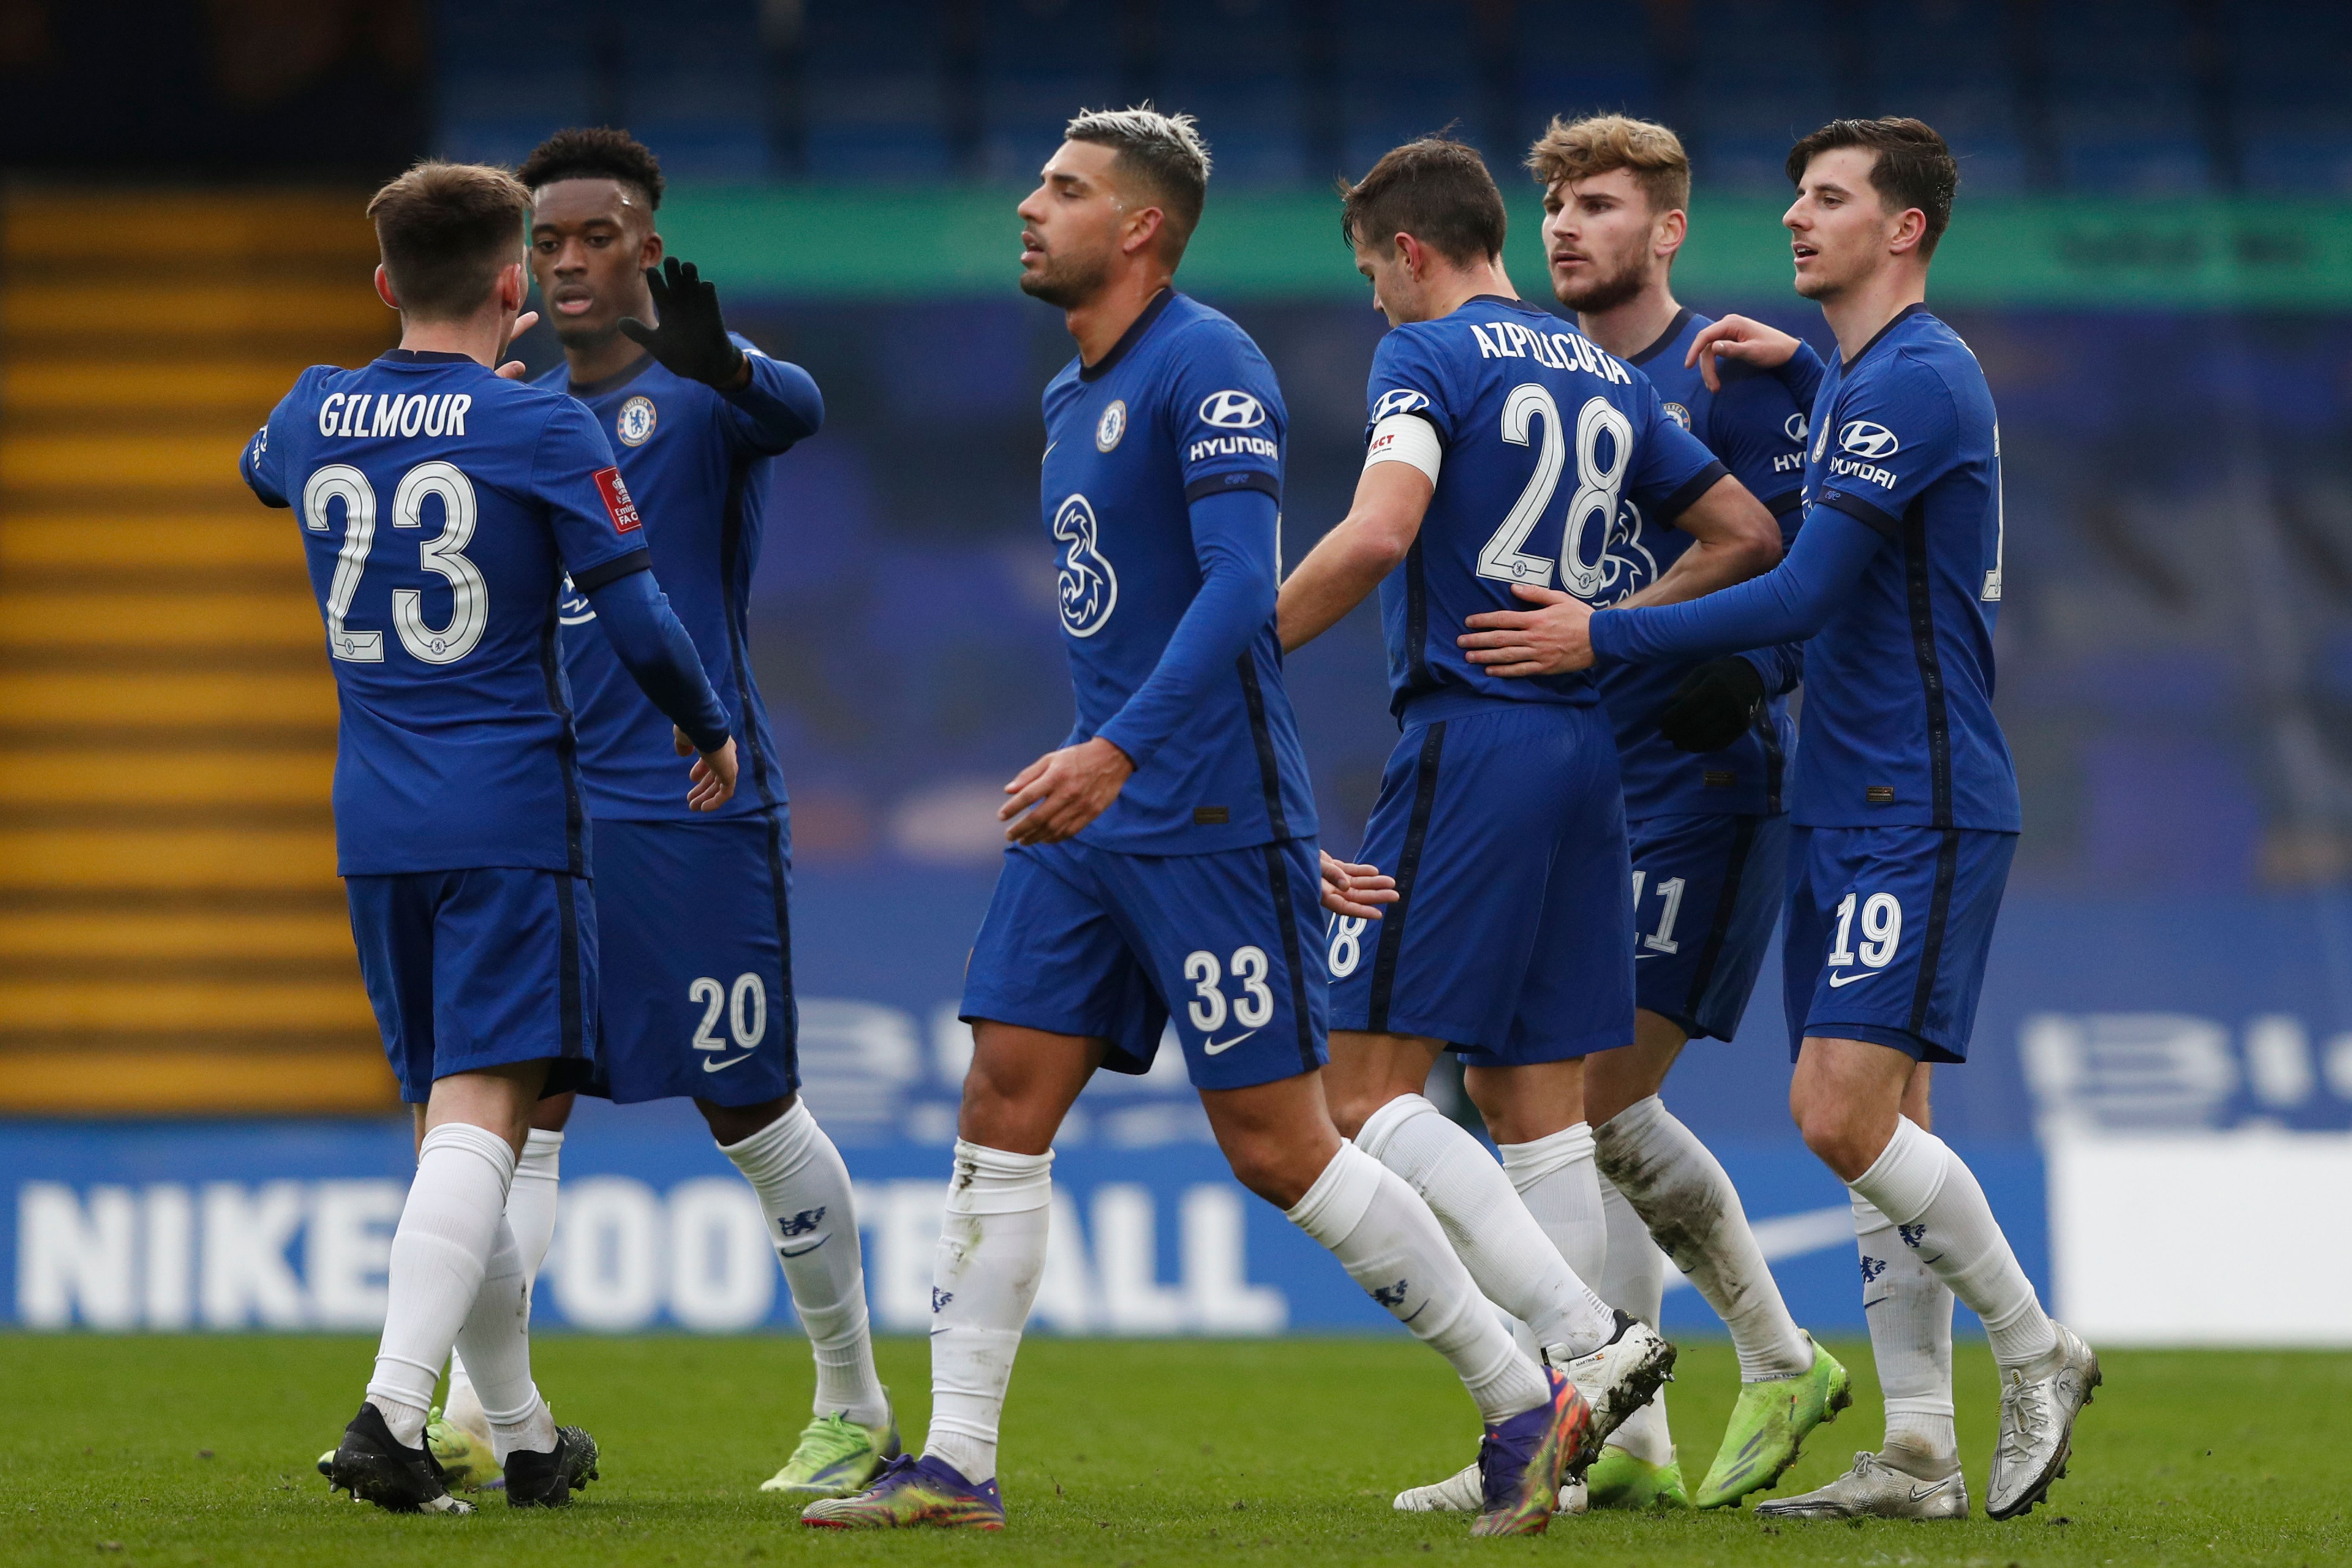 Tottenham Hotspur vs Chelsea tactical preview (Chelsea players are seen in the picture)